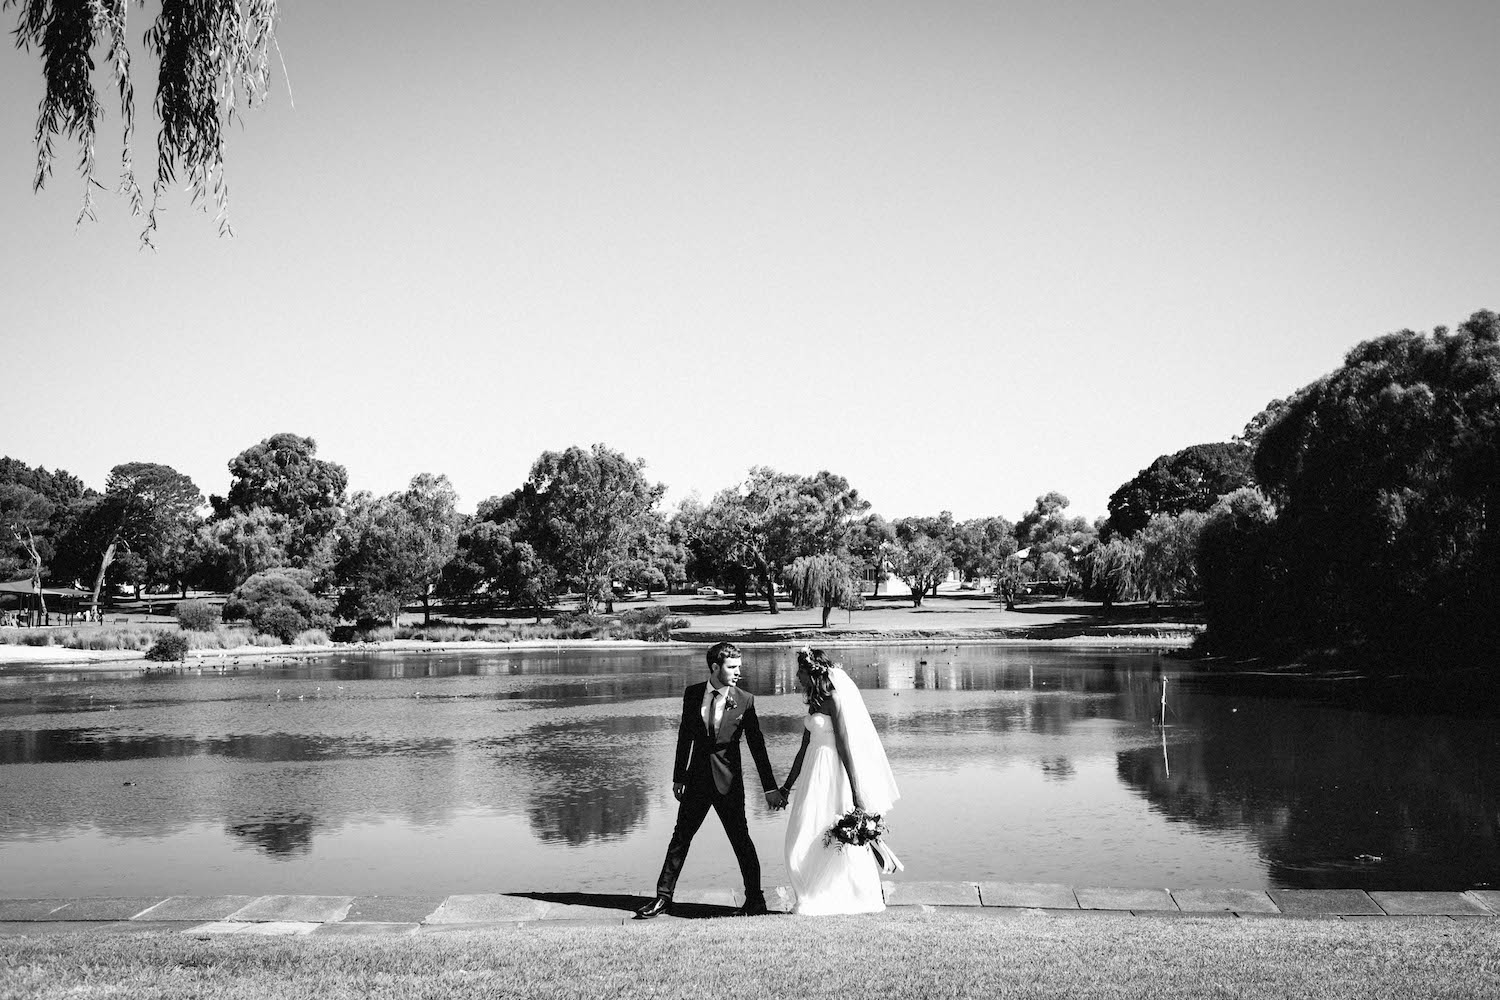 A bride & groom portrait at Shenton Park, photographed by Rhianna May Destination Wedding Photographer